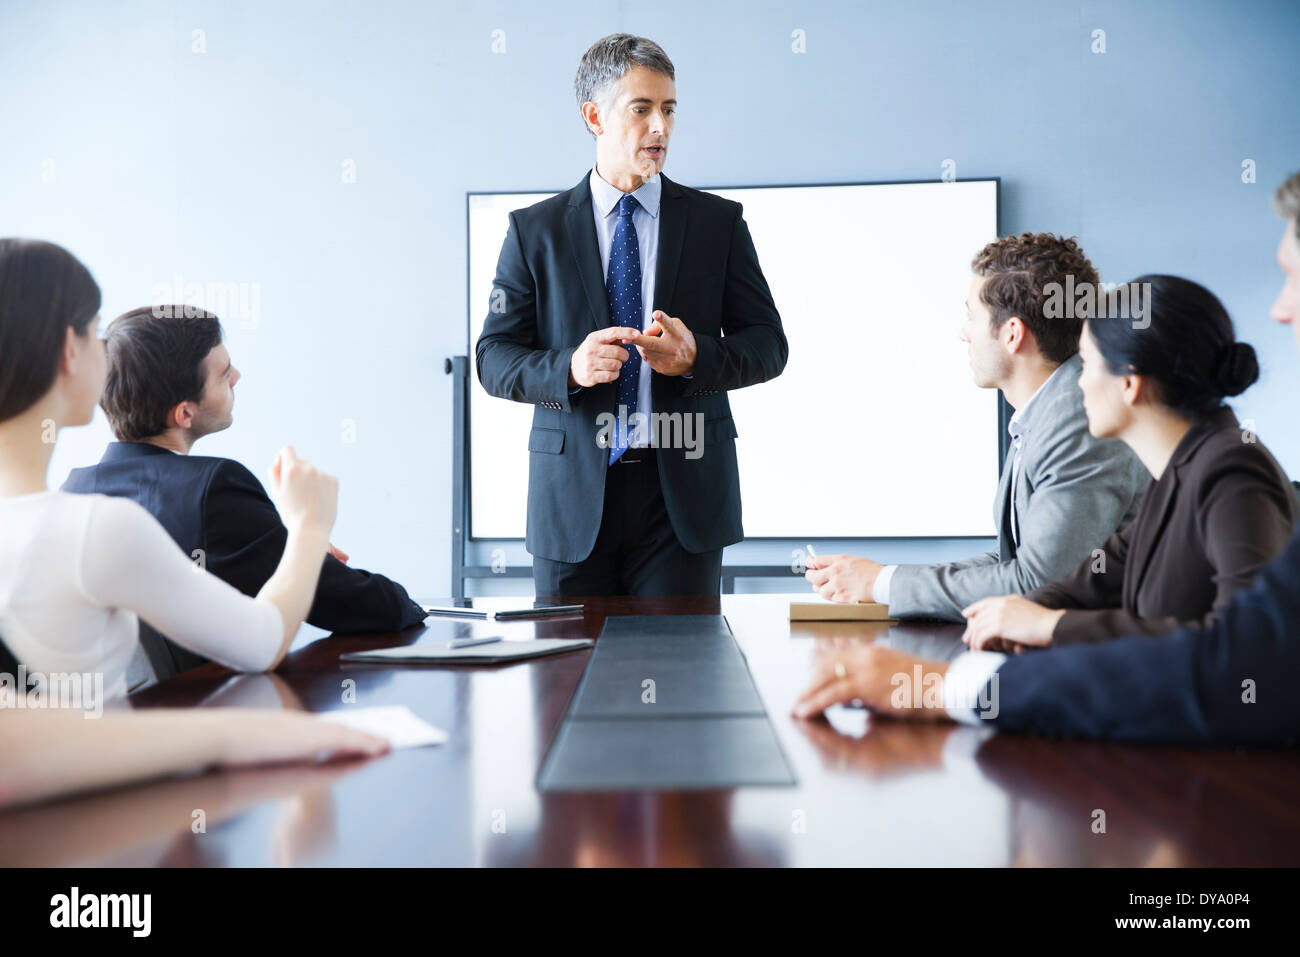 Executive making presentation at business meeting - Stock Image